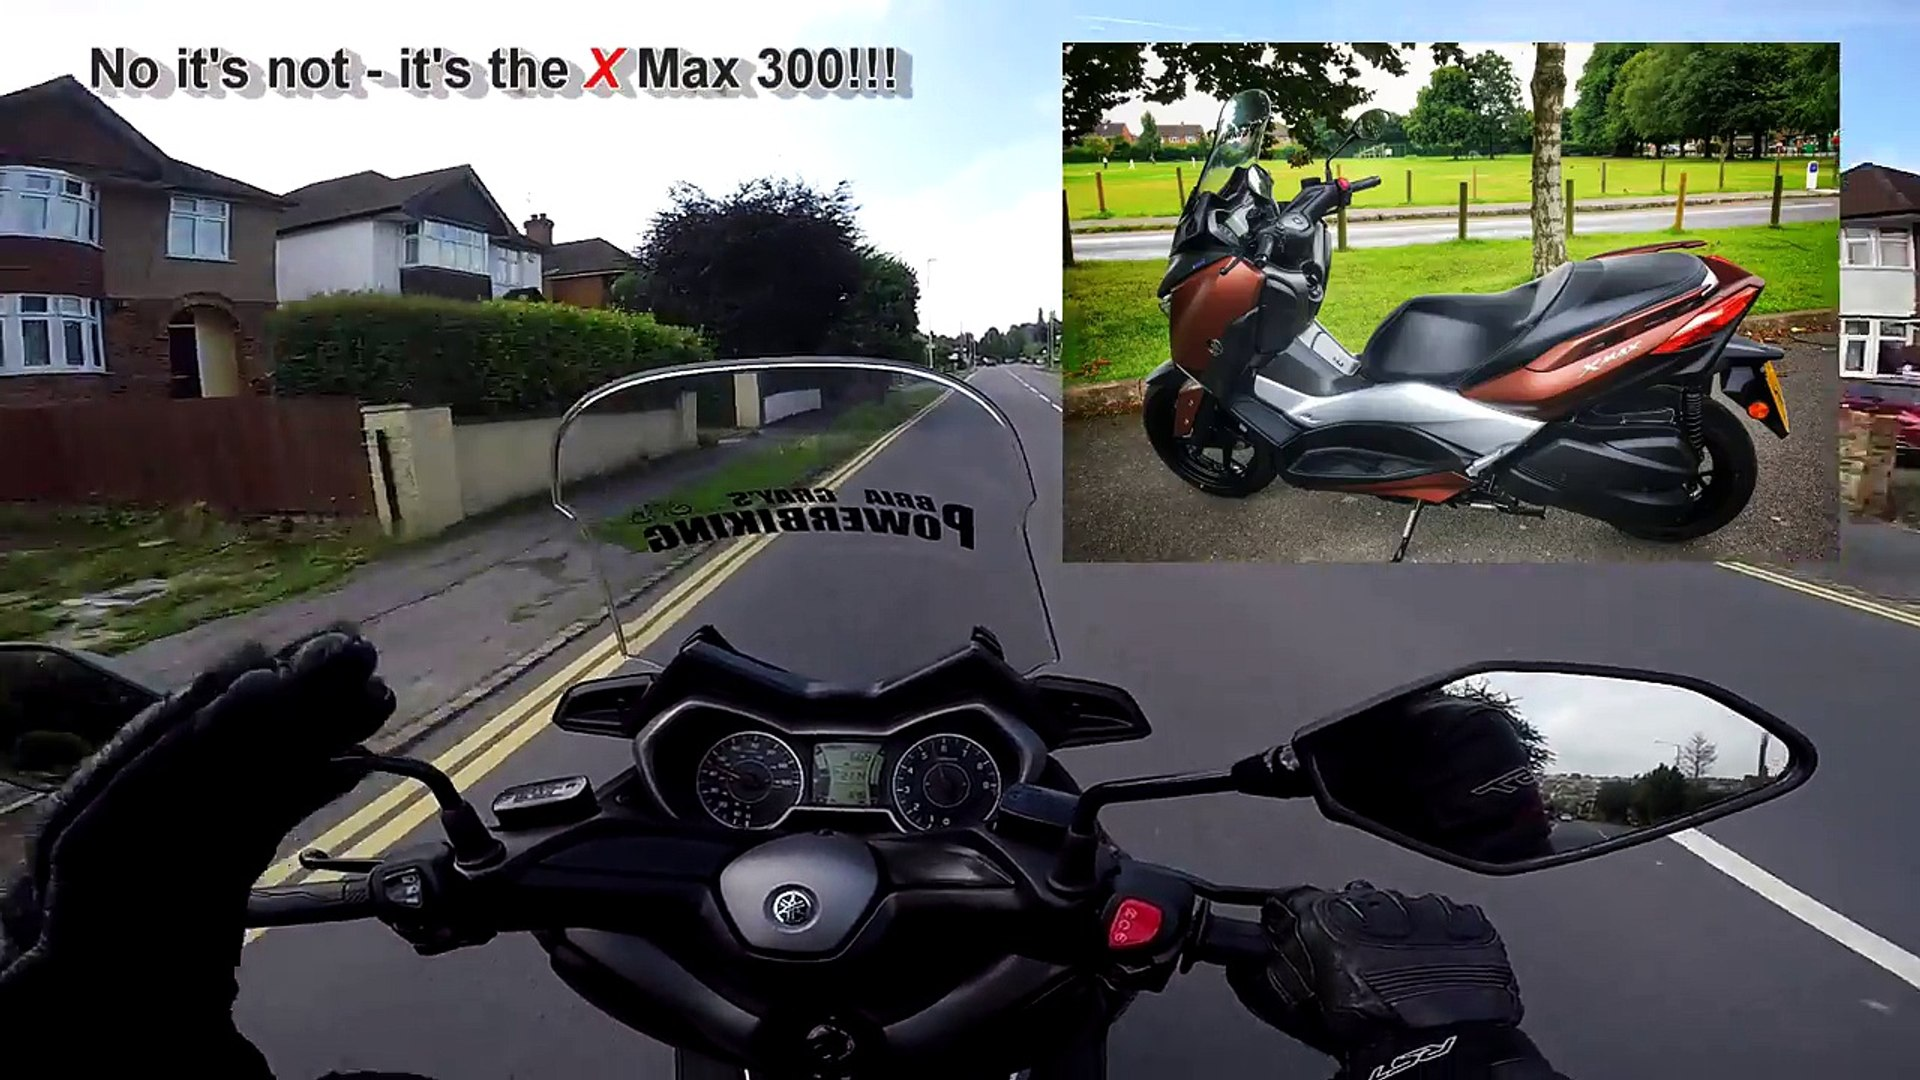 I pop my scooter cherry! - 2017 Yamaha X-Max 300 Review